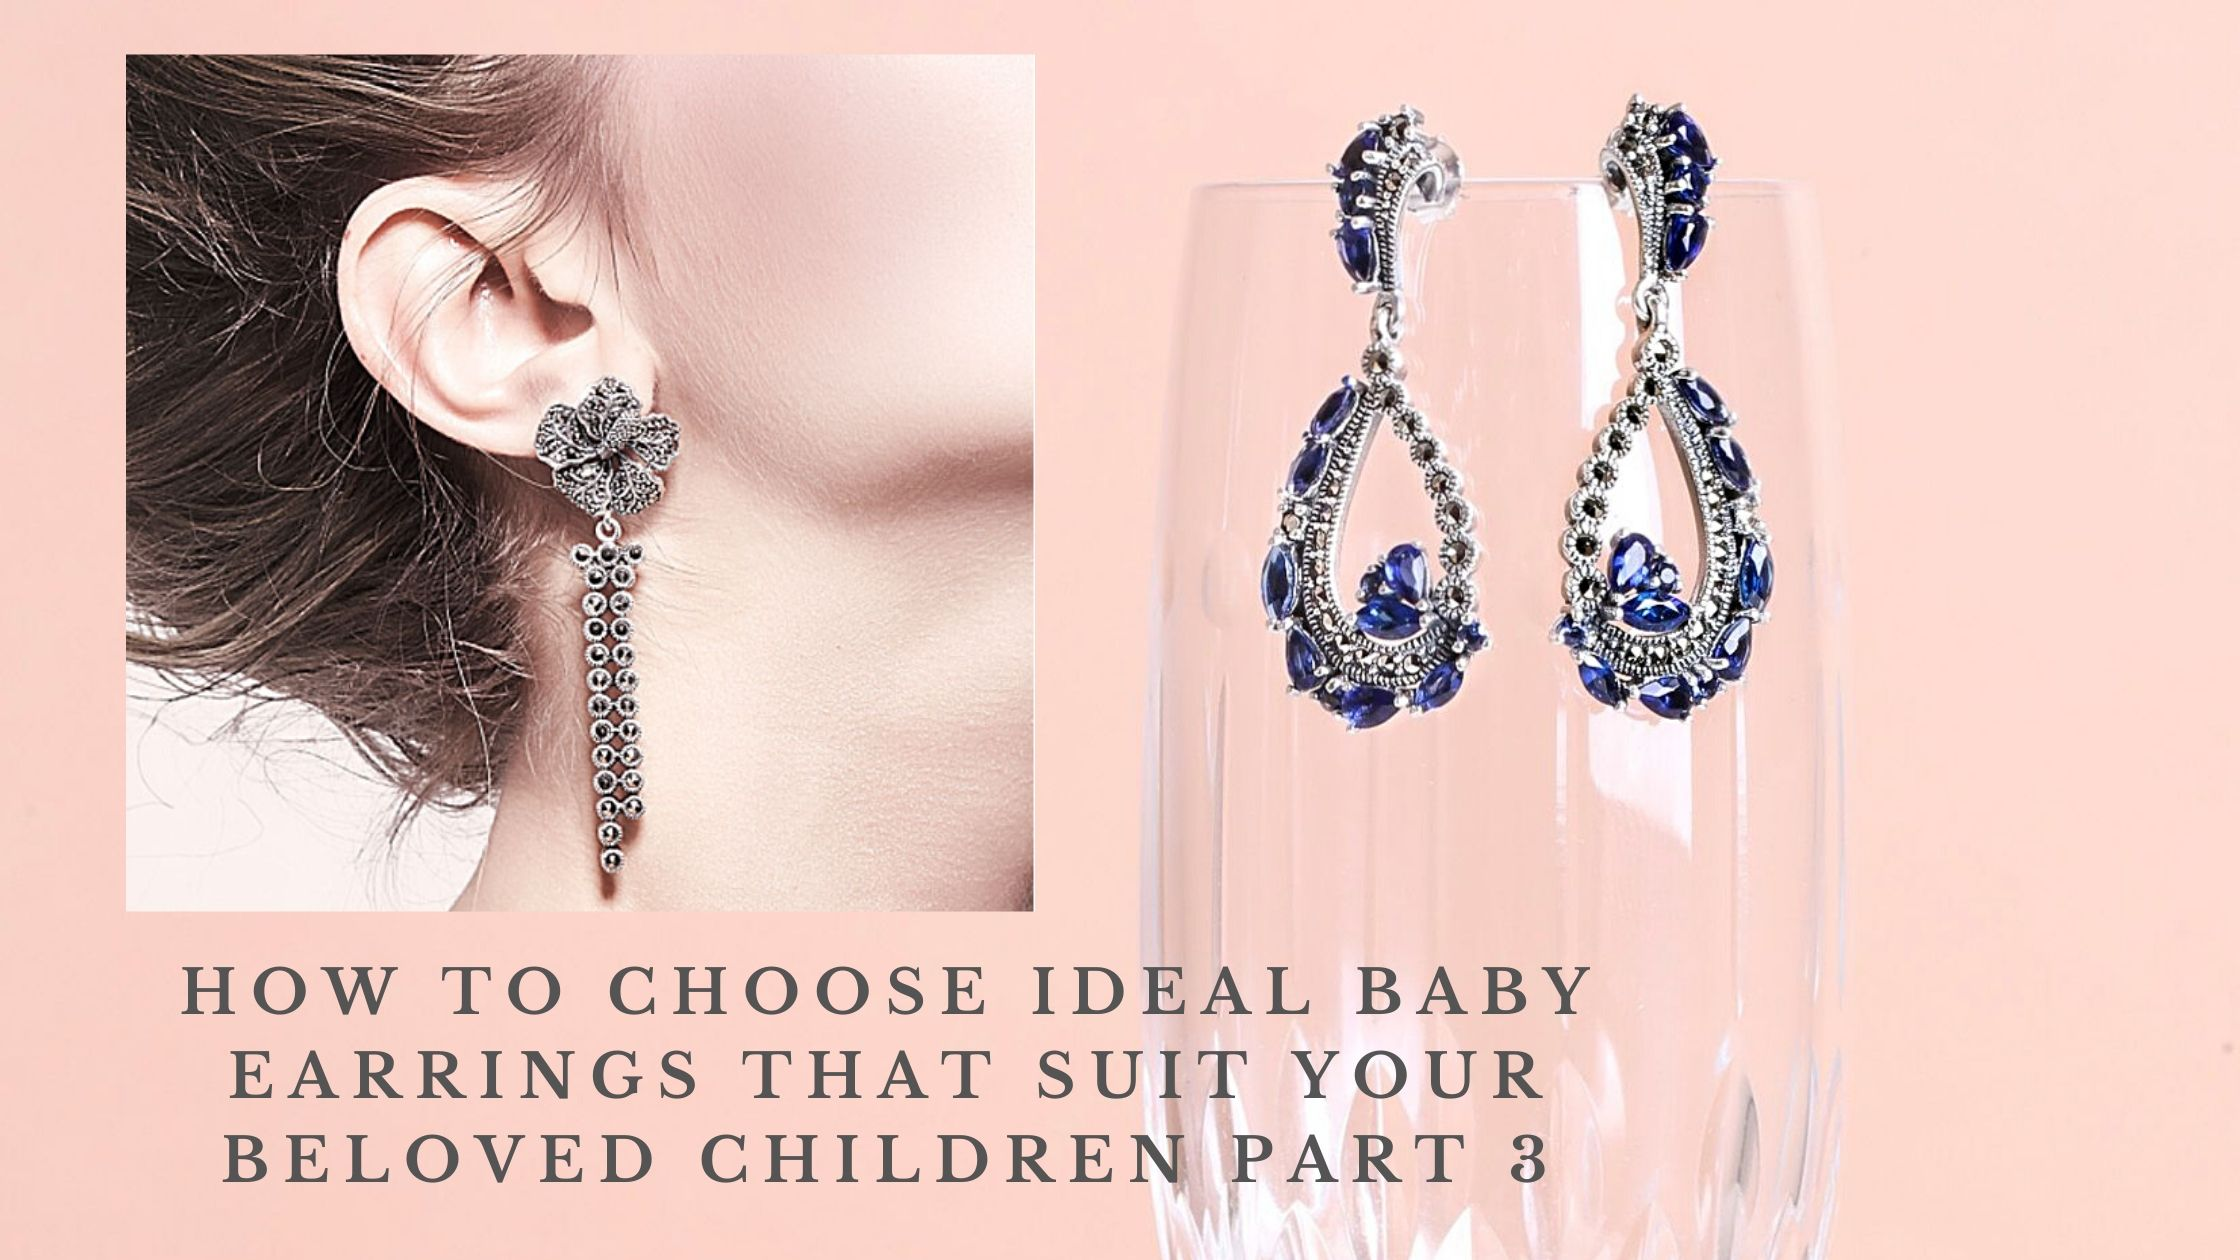 HOW TO CHOOSE IDEAL BABY EARRINGS THAT SUIT YOUR BELOVED CHILDREN PART 3